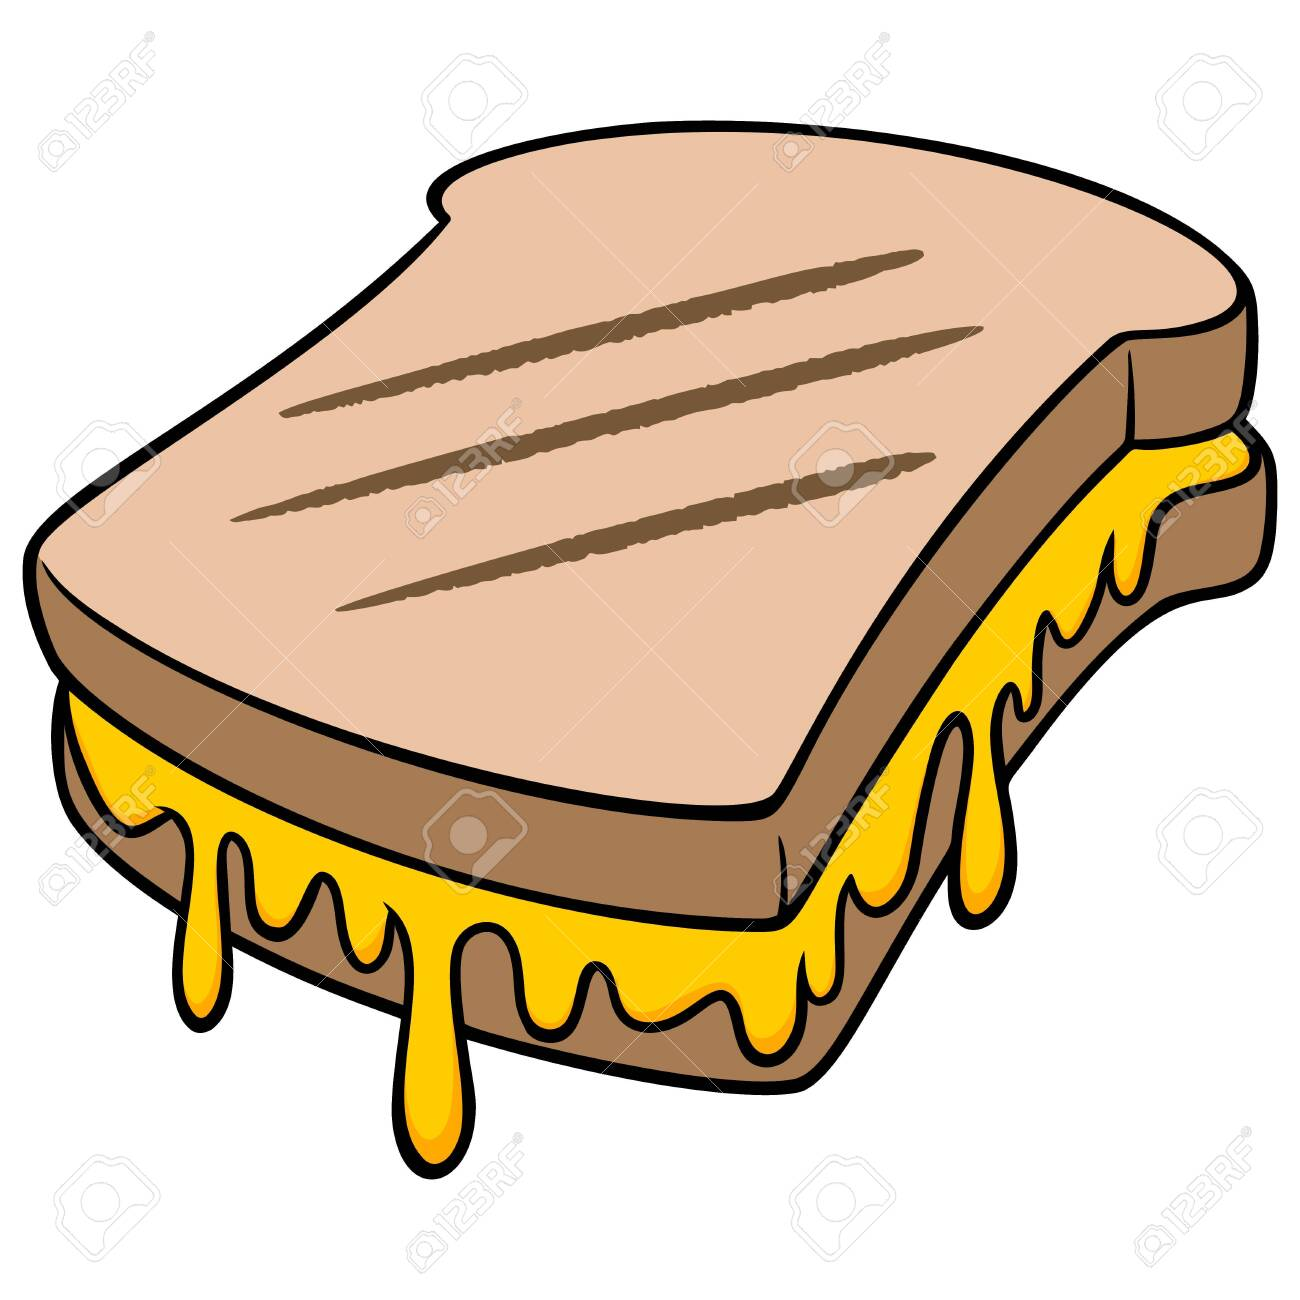 grilled cheese a cartoon illustration of a grilled cheese sandwich royalty free cliparts vectors and stock illustration image 139799899 grilled cheese a cartoon illustration of a grilled cheese sandwich